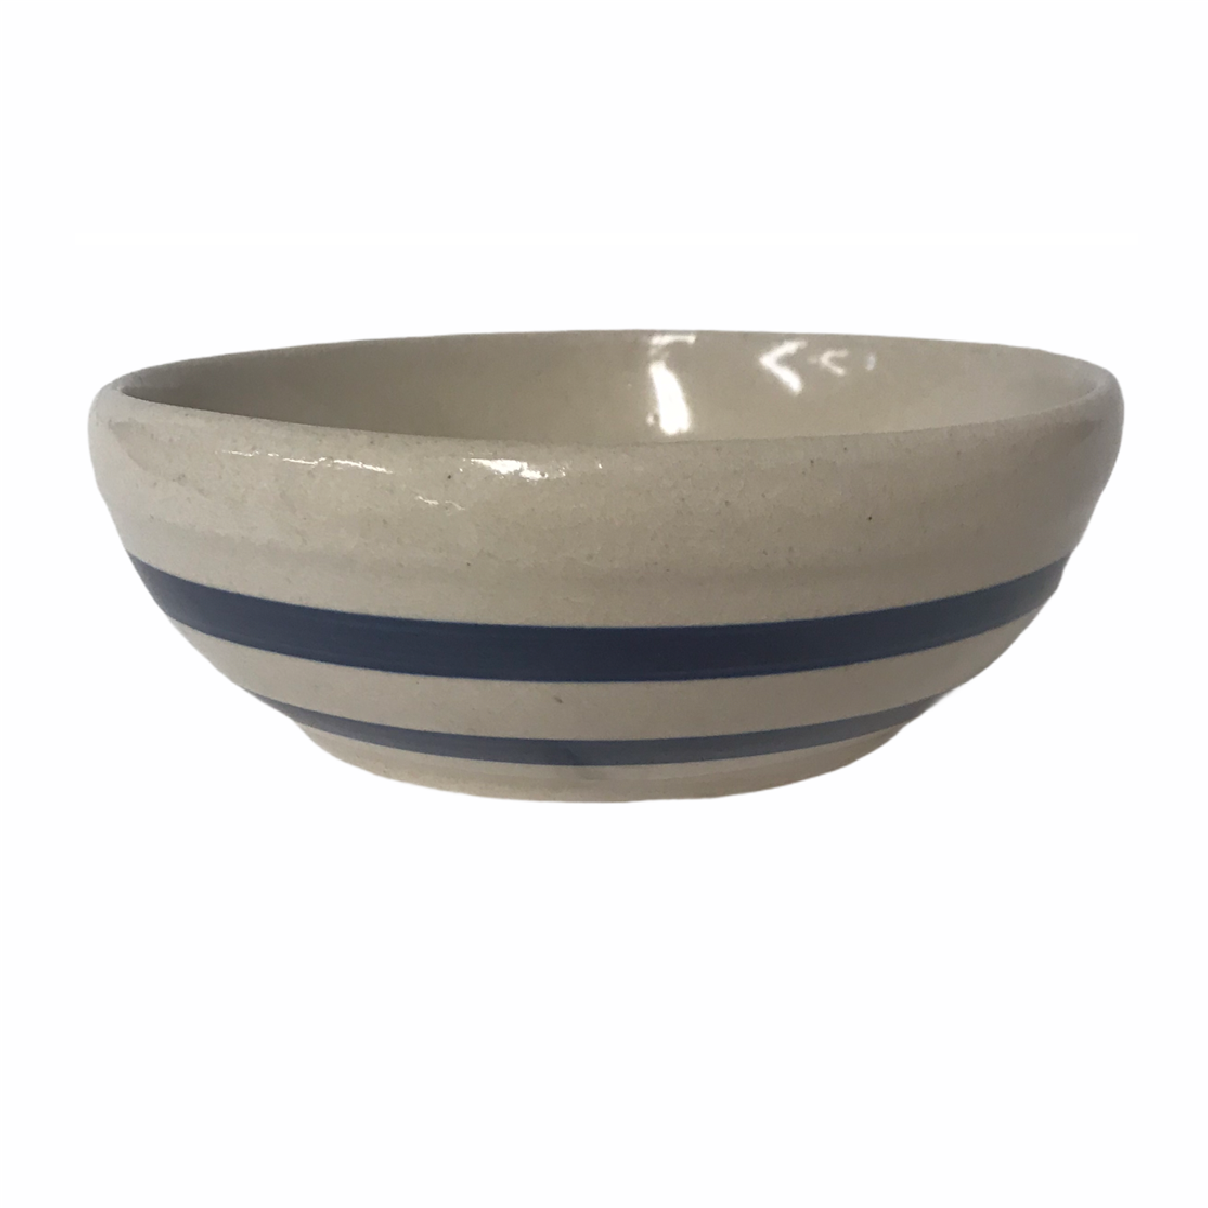 RRP Company Roseville Ohio Pottery Bowl 6.5 inch With 2 Blue Stipes Vintage - $18.68